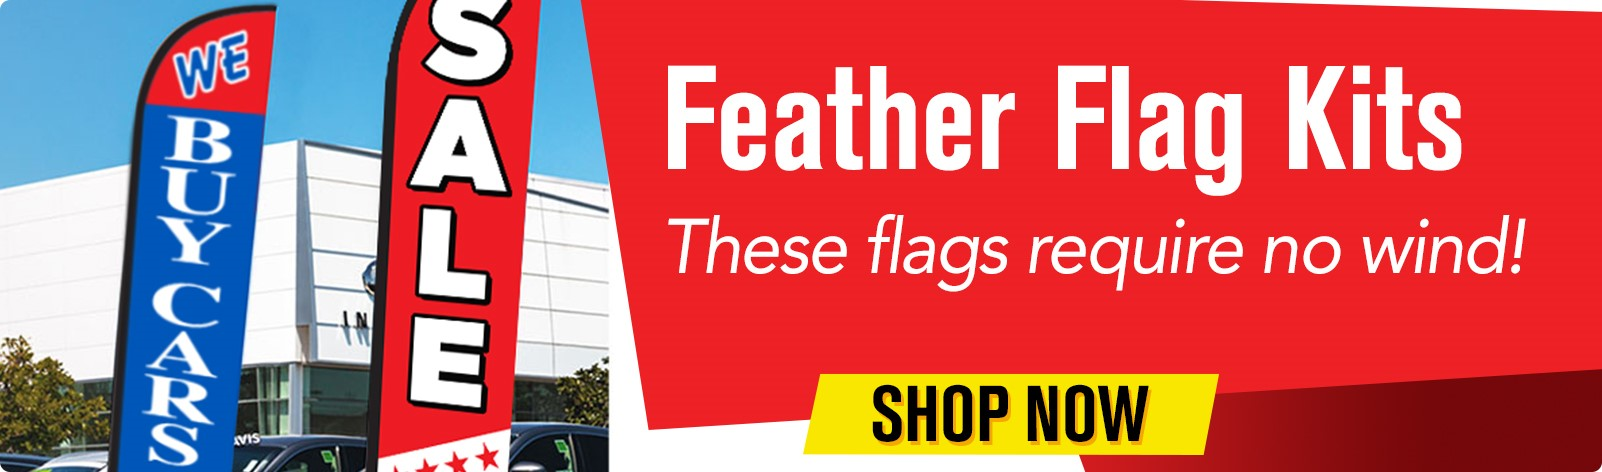 Feather Flag Kits - These flags require no wind!